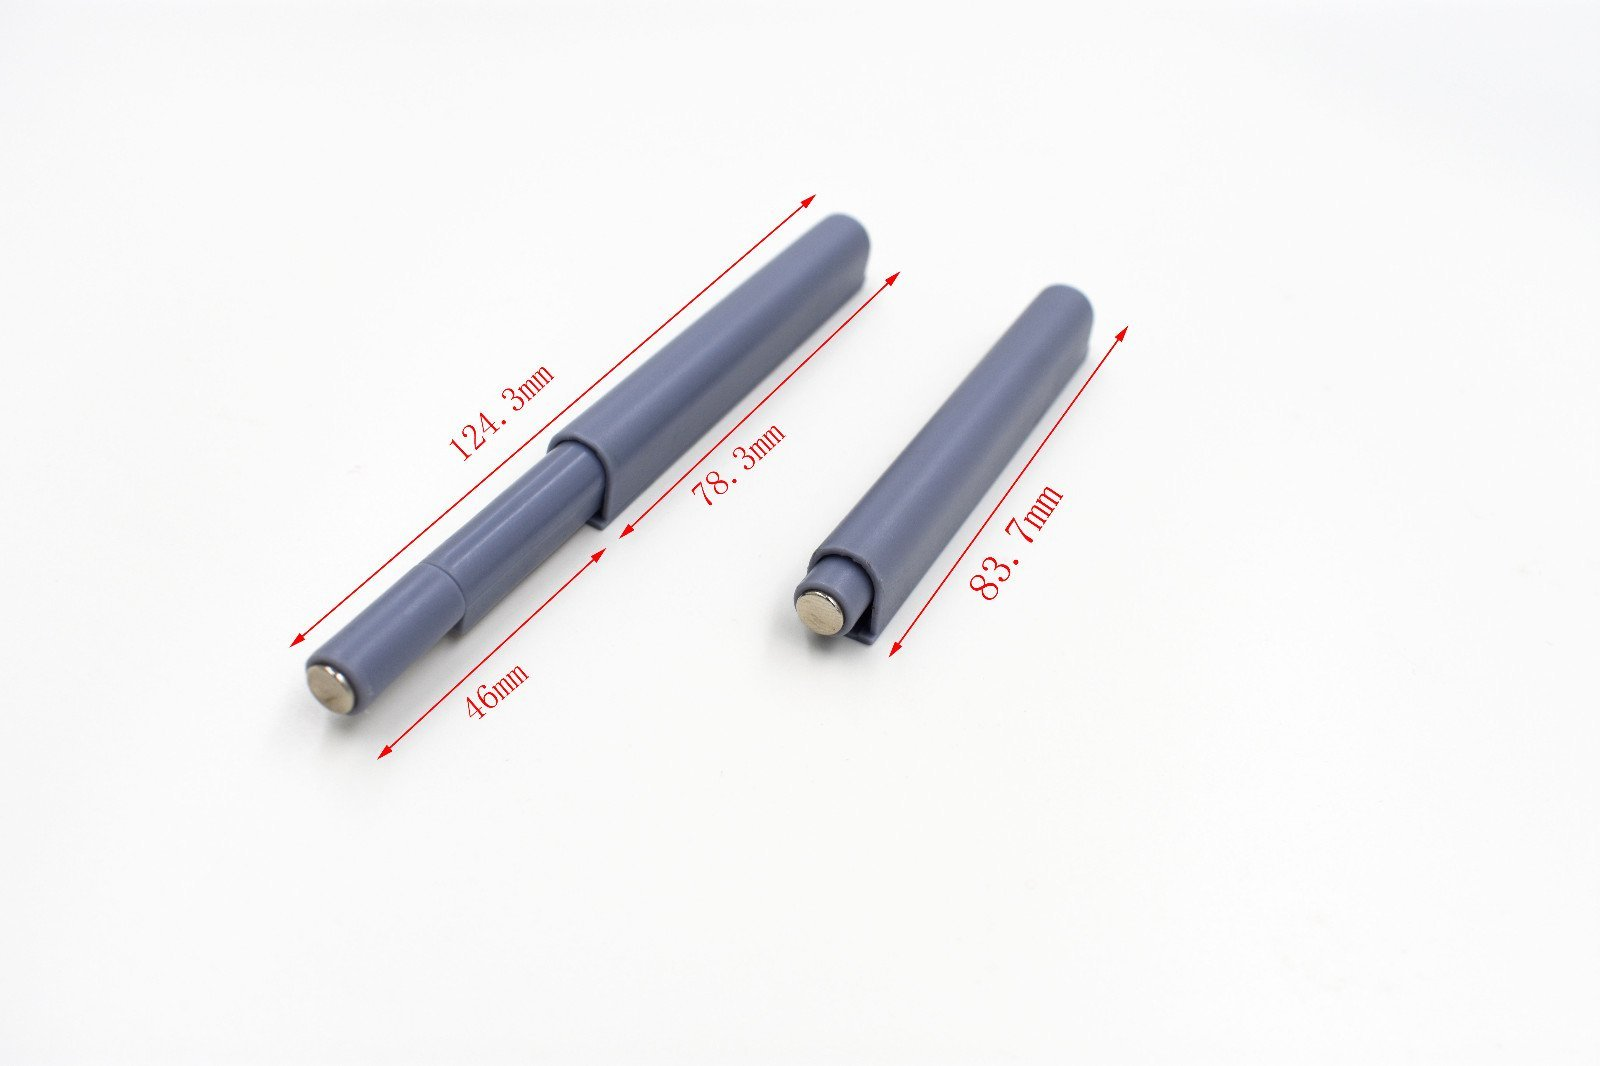 Kerui Furniture Hardware Brand free accessories muffler rebound device supplier